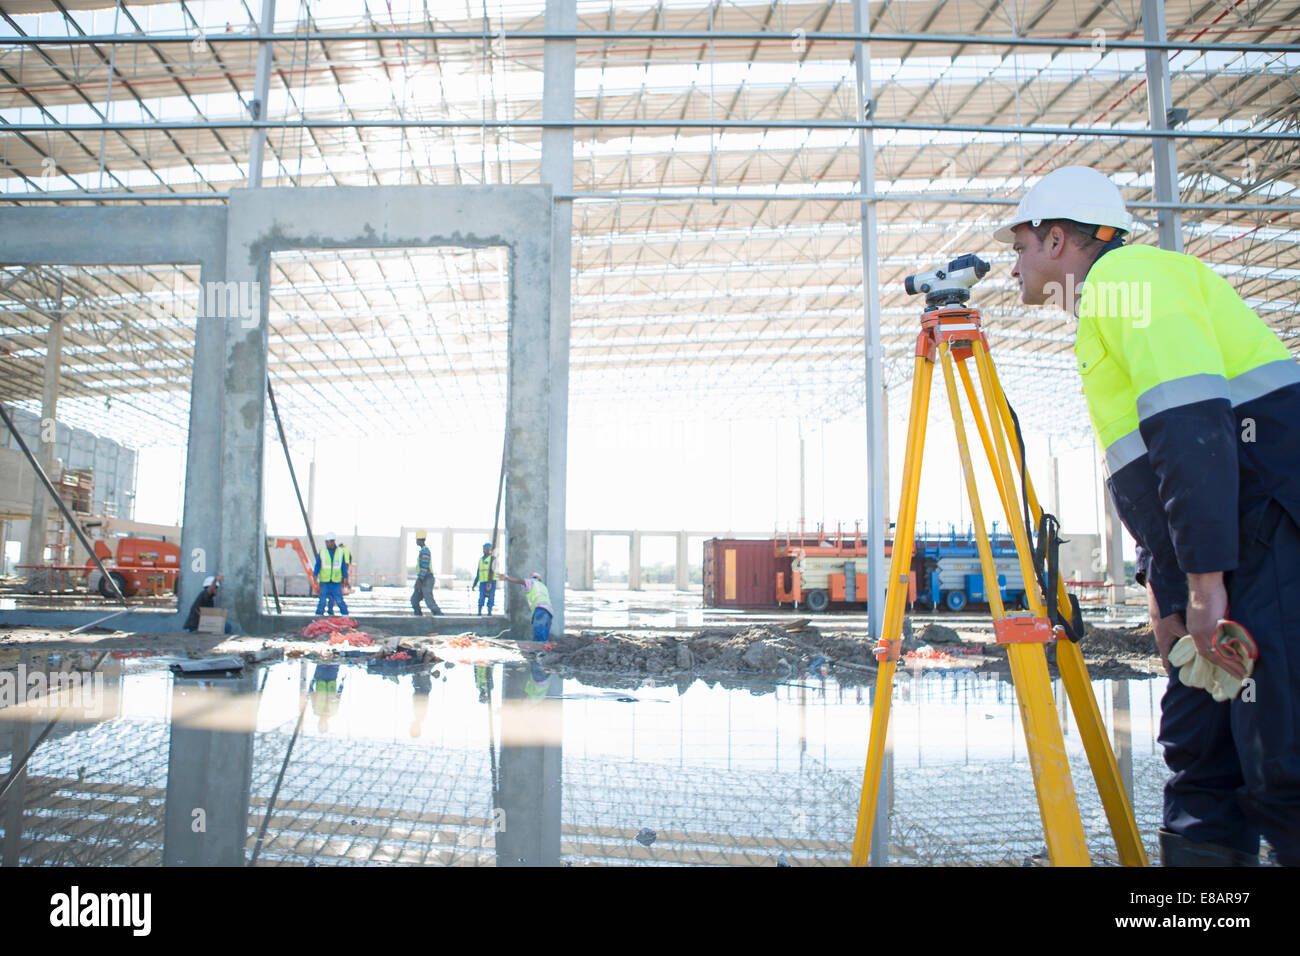 Surveyor using tripod and level on construction site - Stock Image